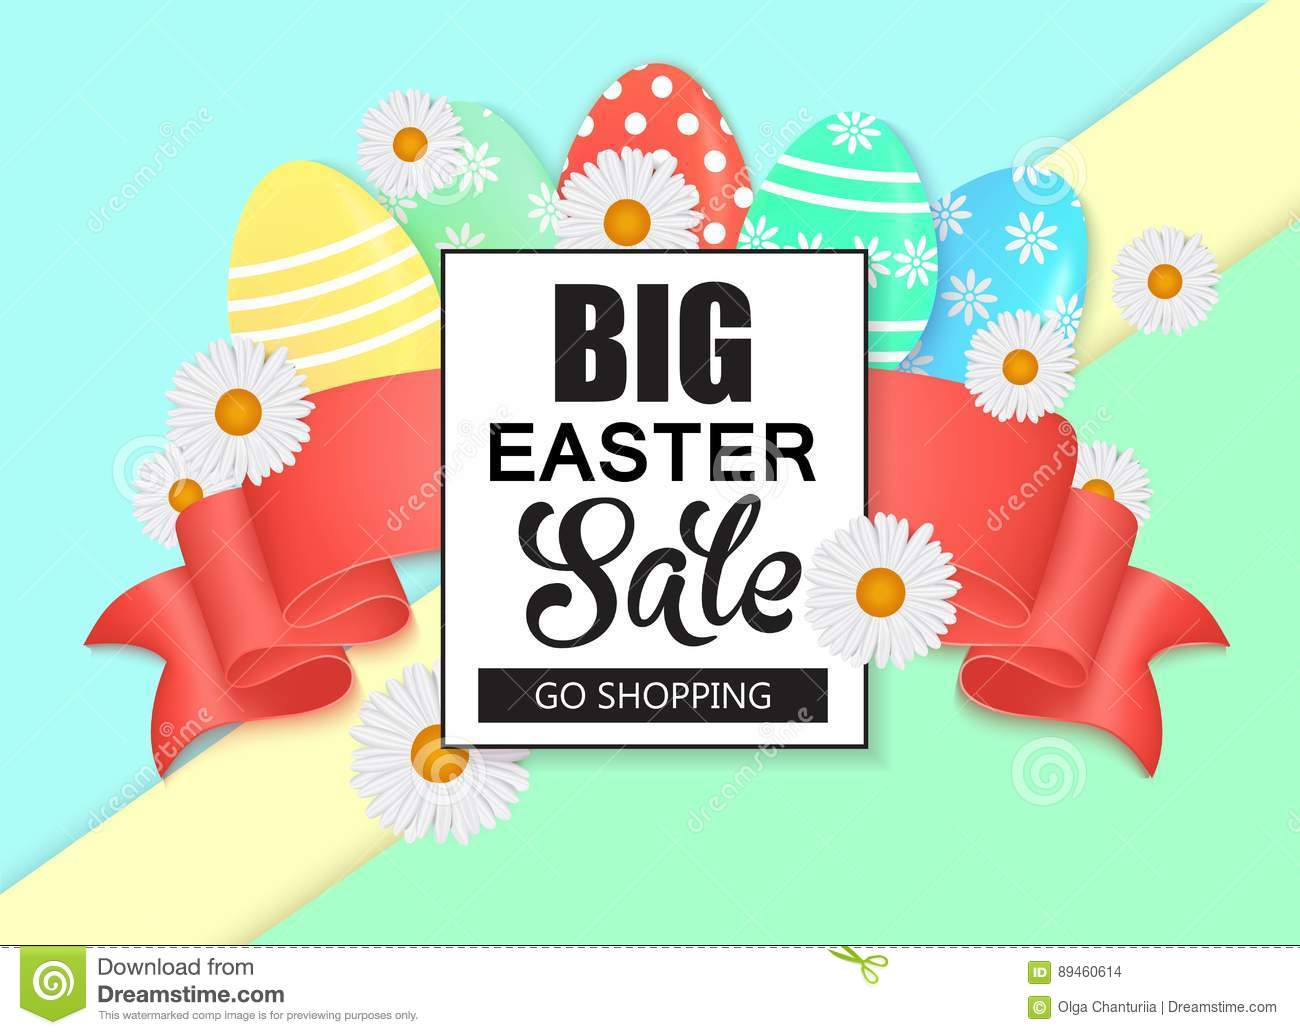 Easter Sale Colorful Banner With Eggs And Ribbon. Vector Background,  Voucher, Brochure Template. Universal Season Spring Illustration With Place  For Text